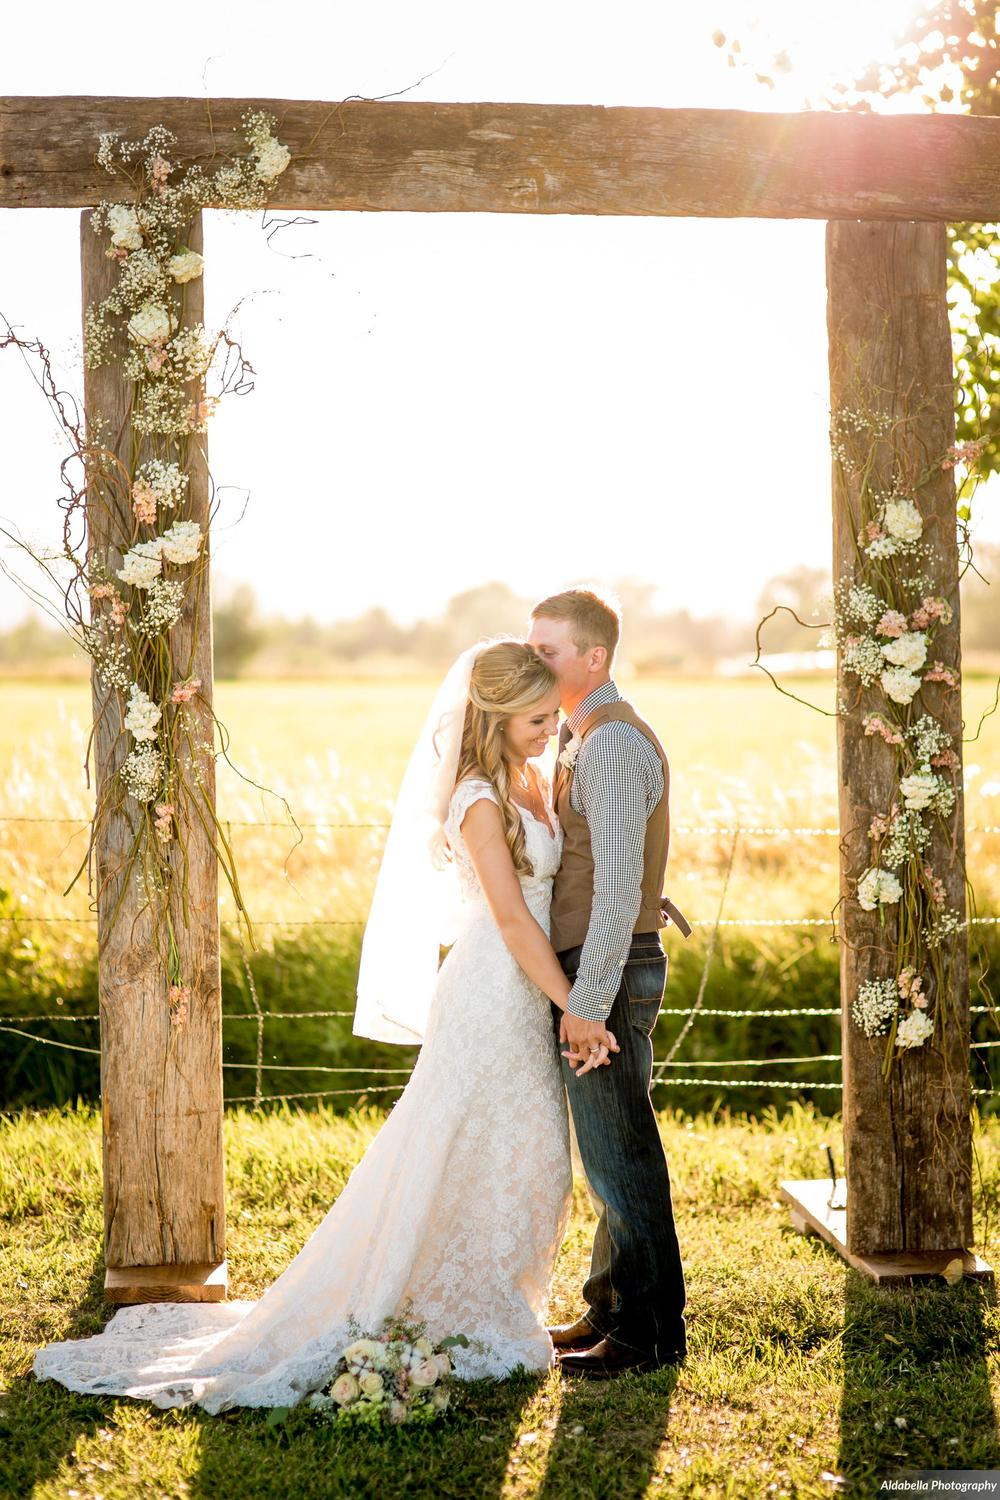 Leslie | July 26, 2015 | Ya Ya Farm & Orchard | Longmont, Colorado |  Aldabella Photography